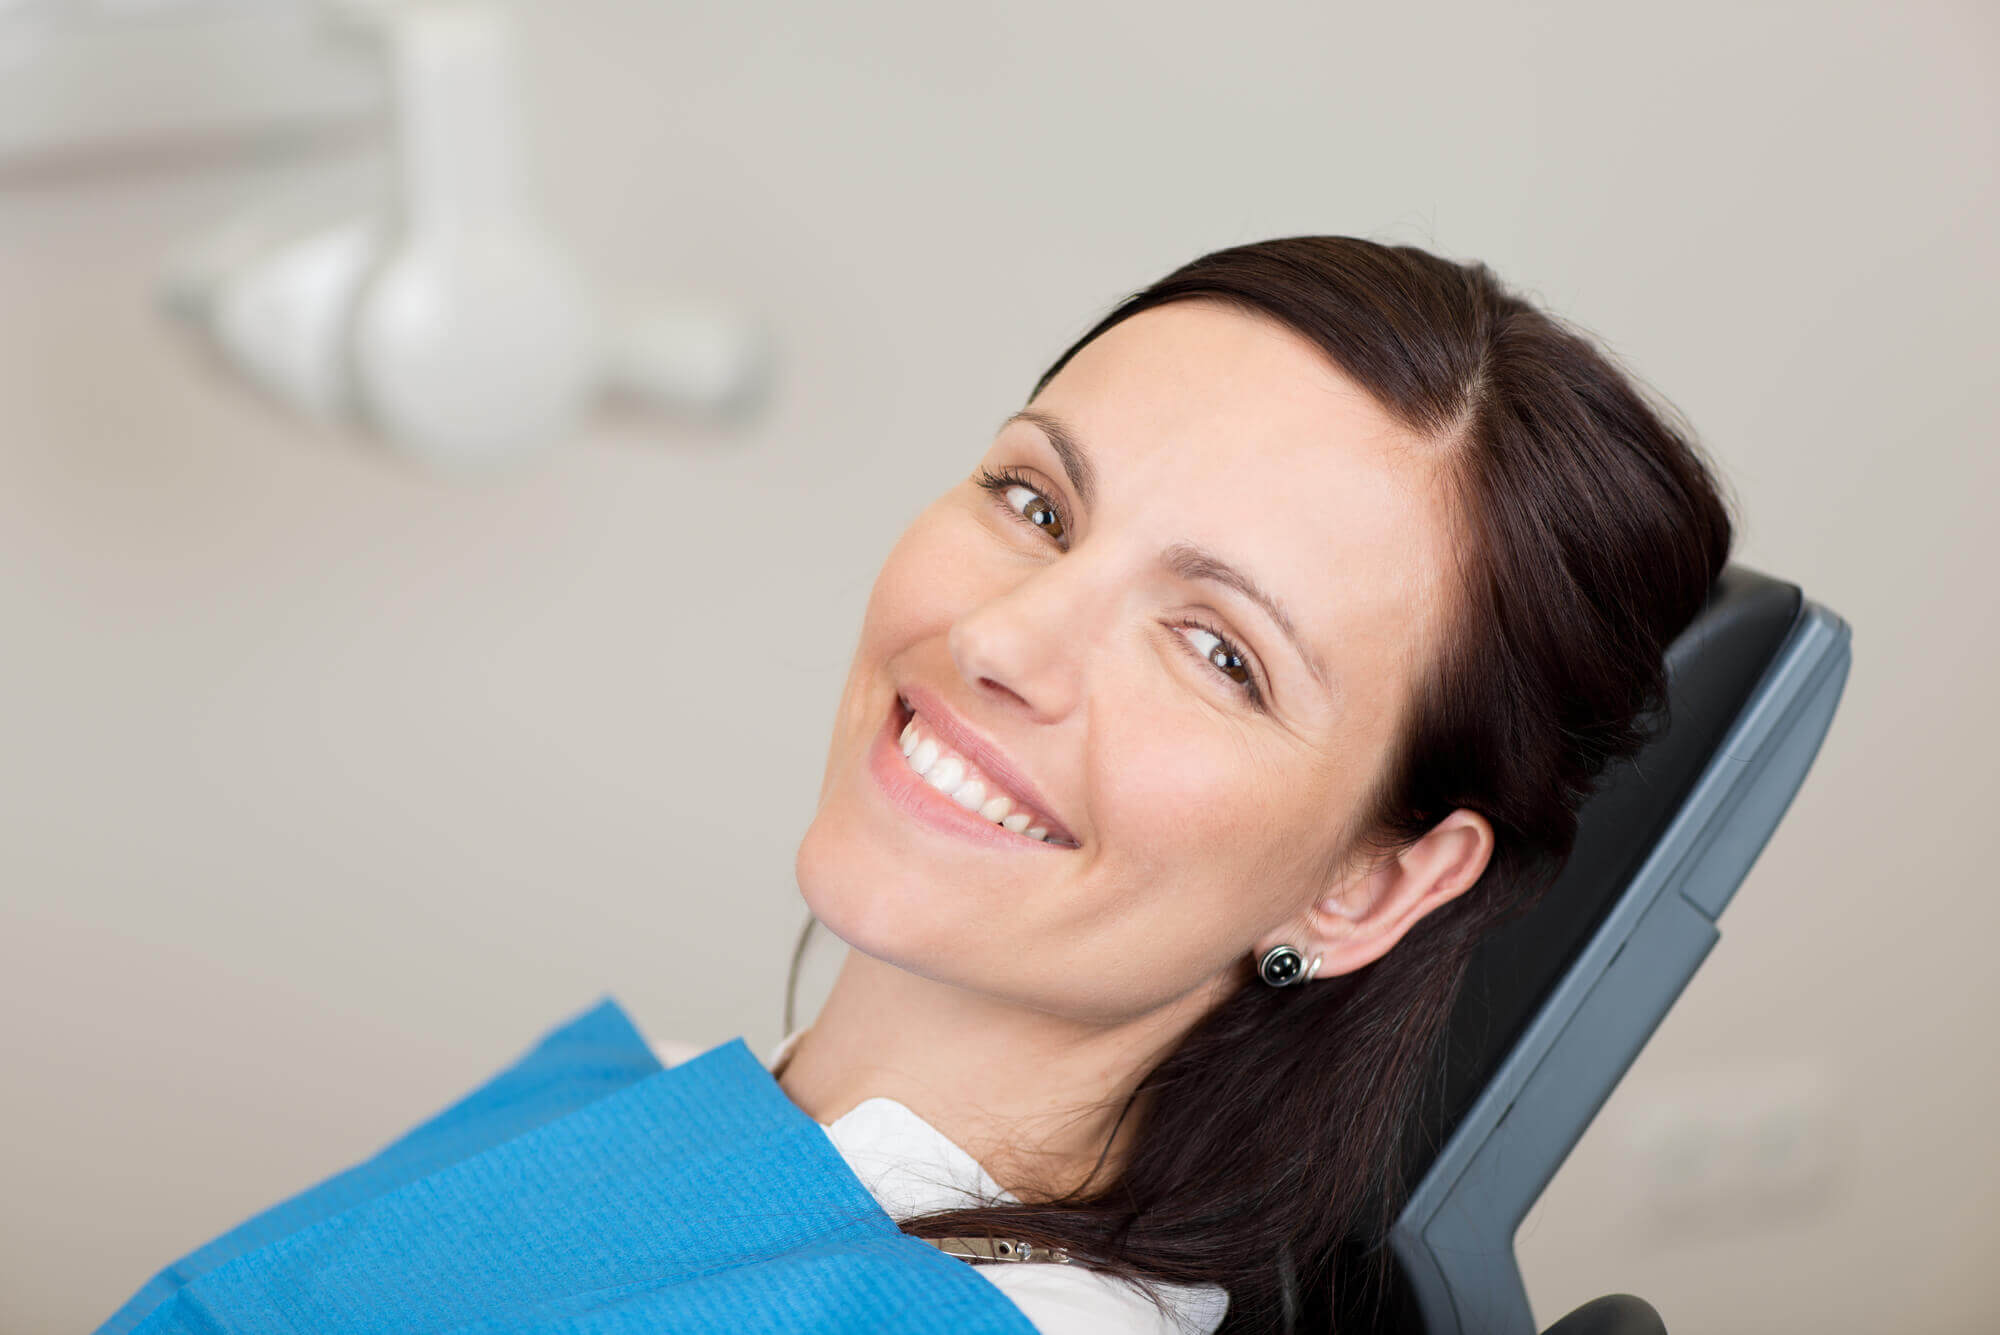 who offers the best teeth whitening north miami?